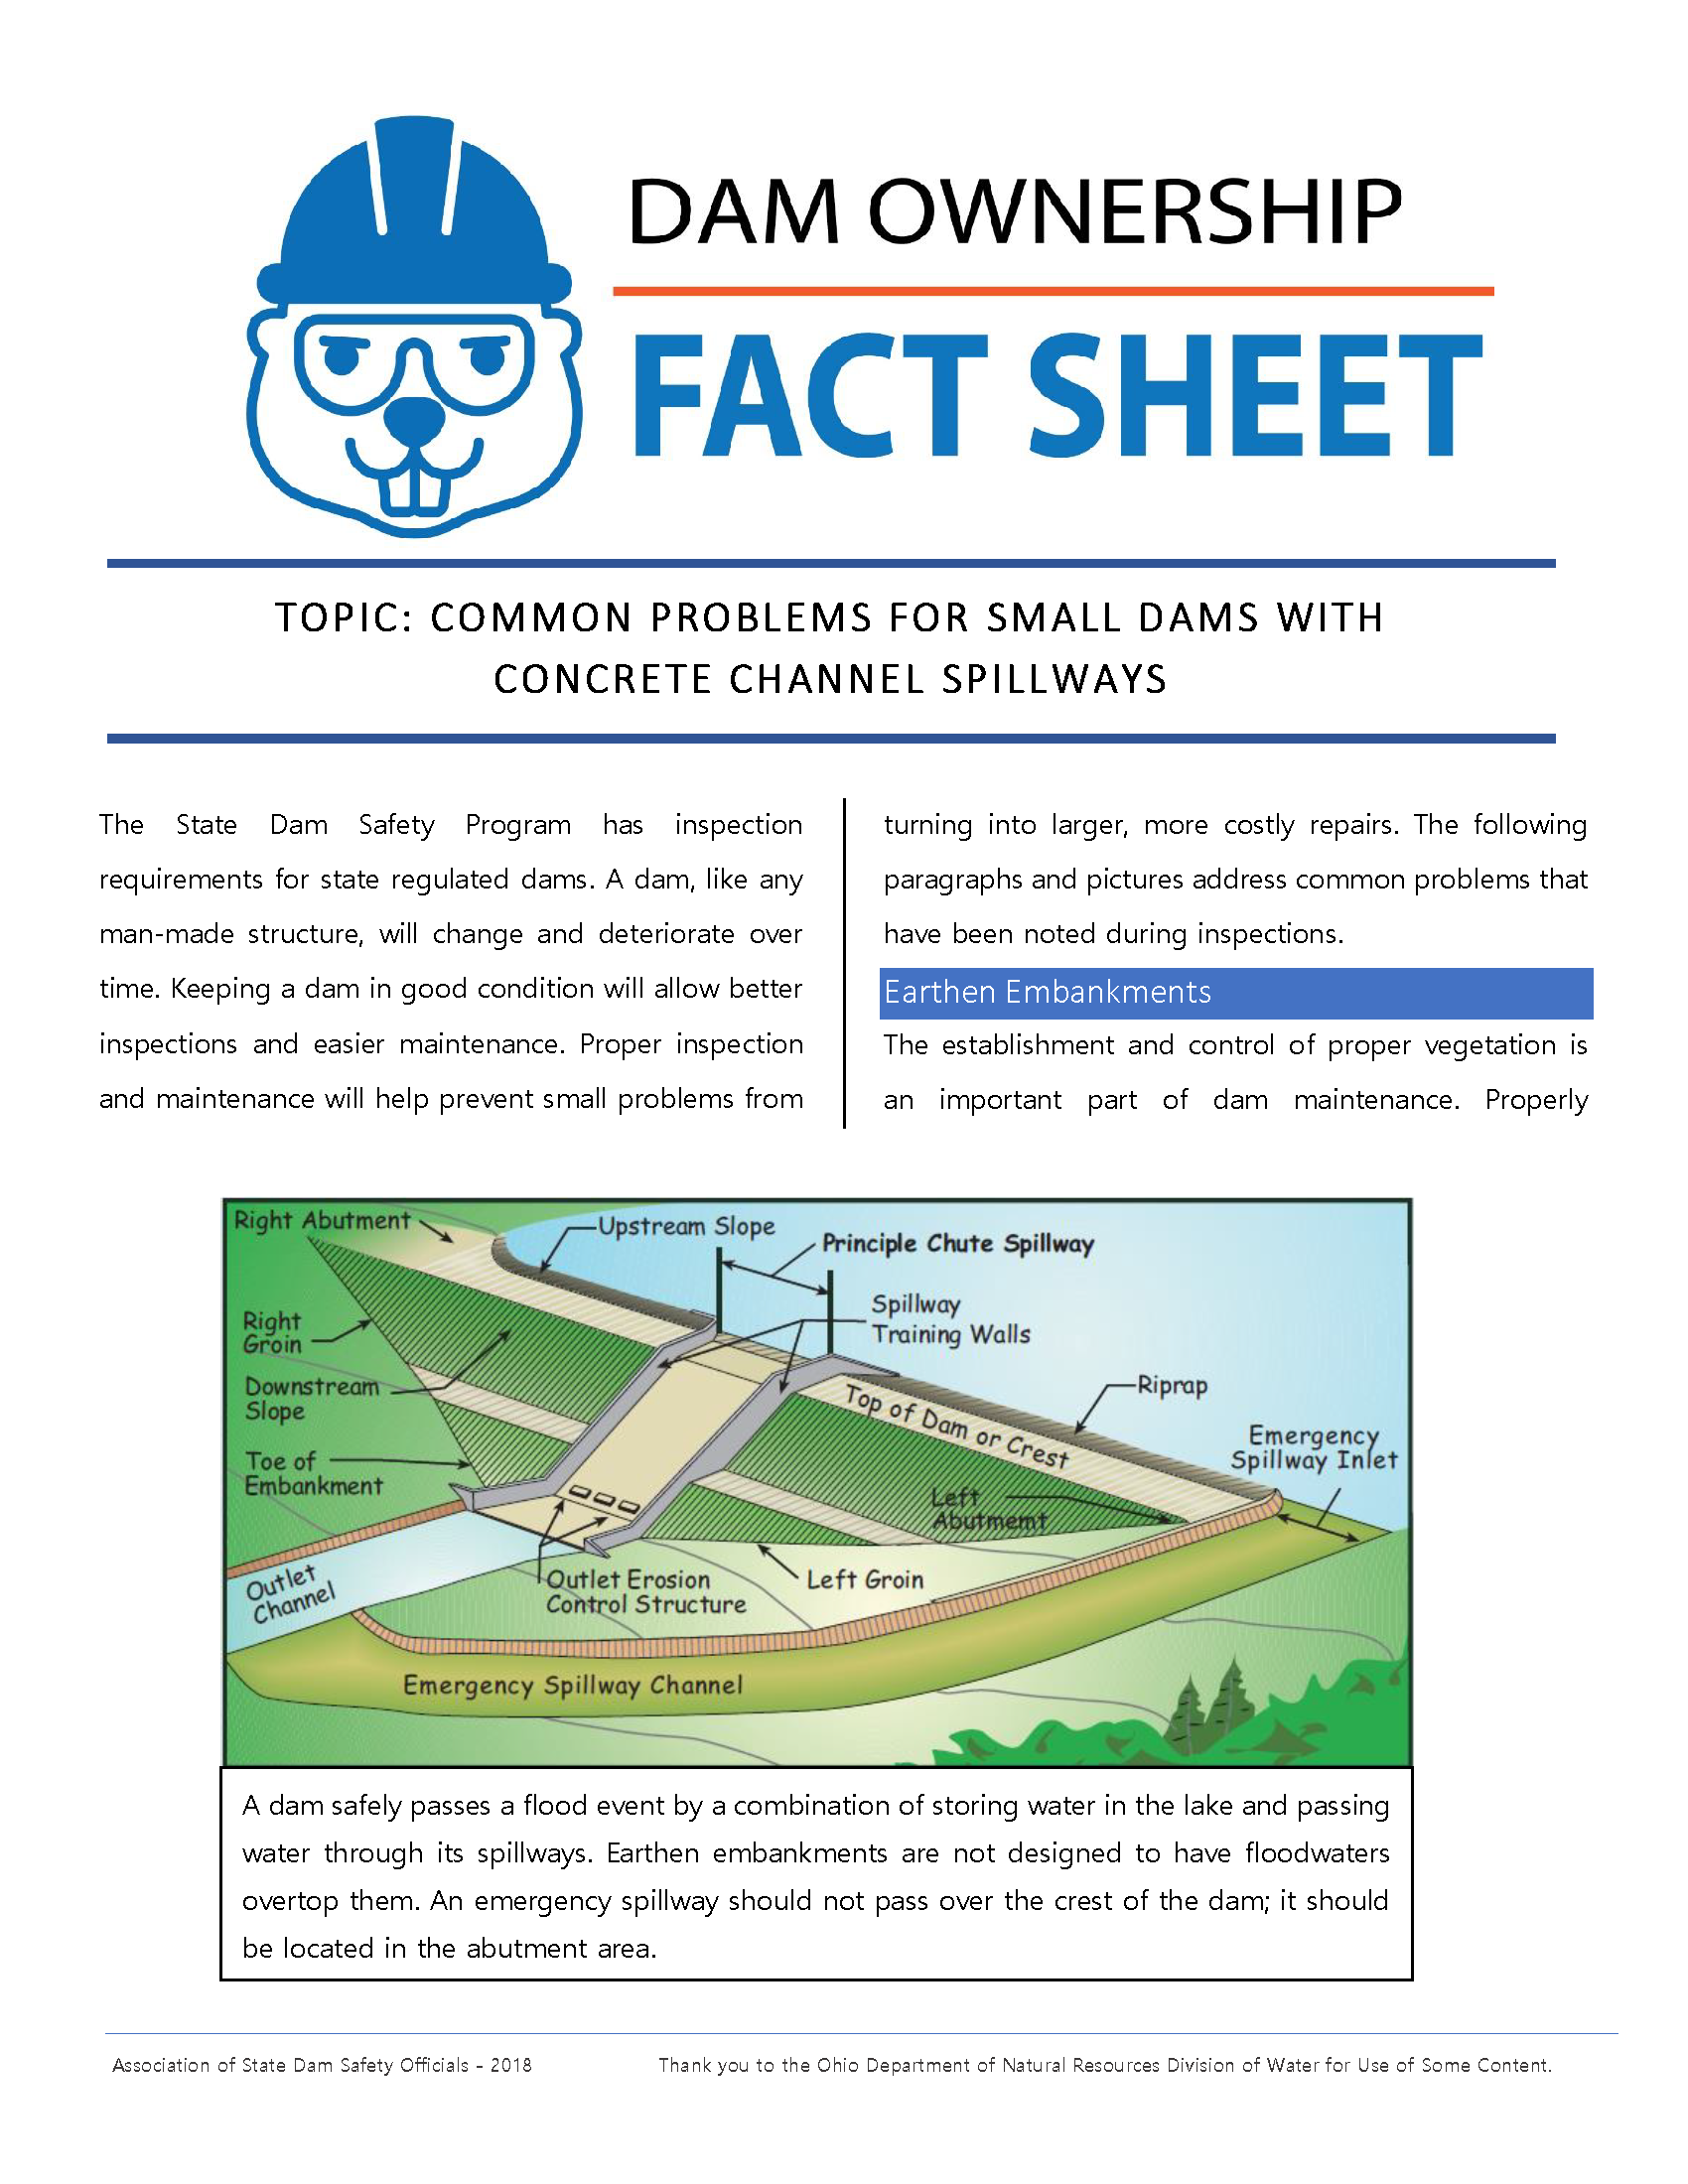 Common Problems with Concrete Channel Spillways Fact Sheet 2018_Page_1.png